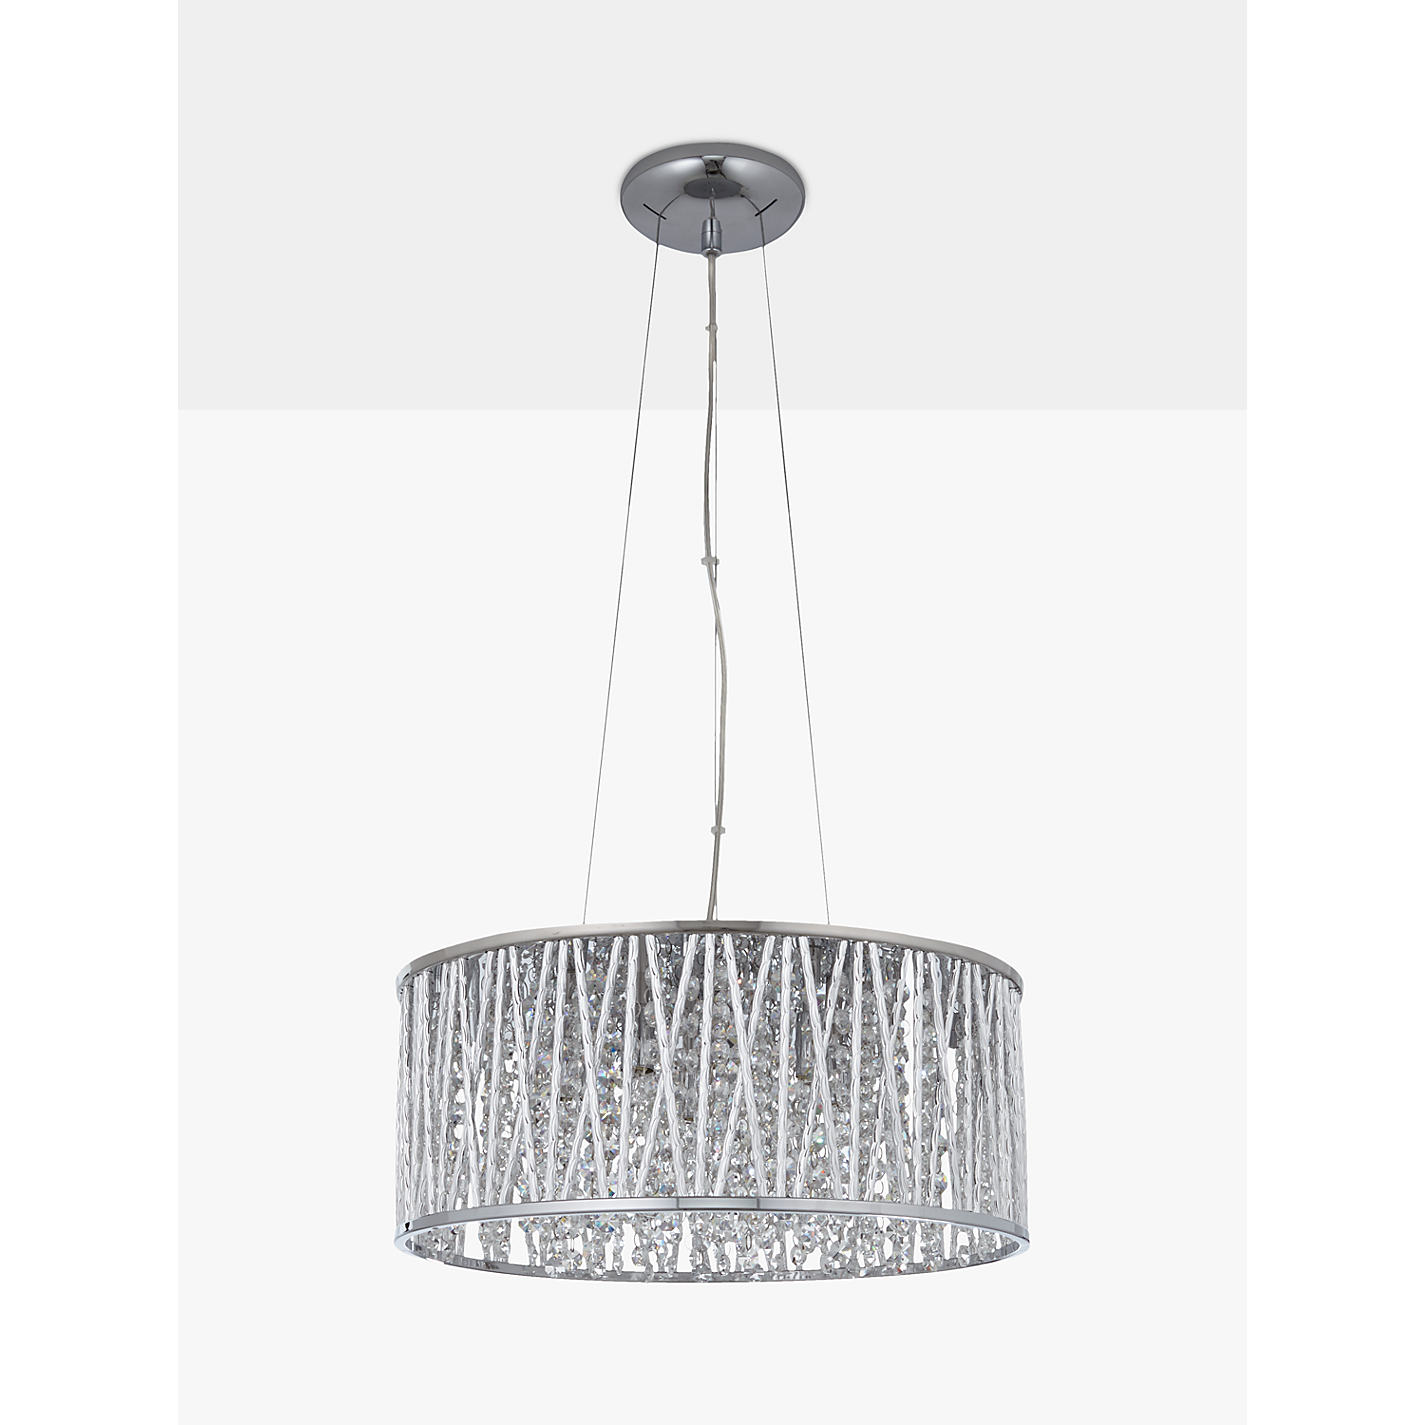 Buy john lewis emilia drum crystal pendant light john lewis buy john lewis emilia drum crystal pendant light online at johnlewis mozeypictures Gallery